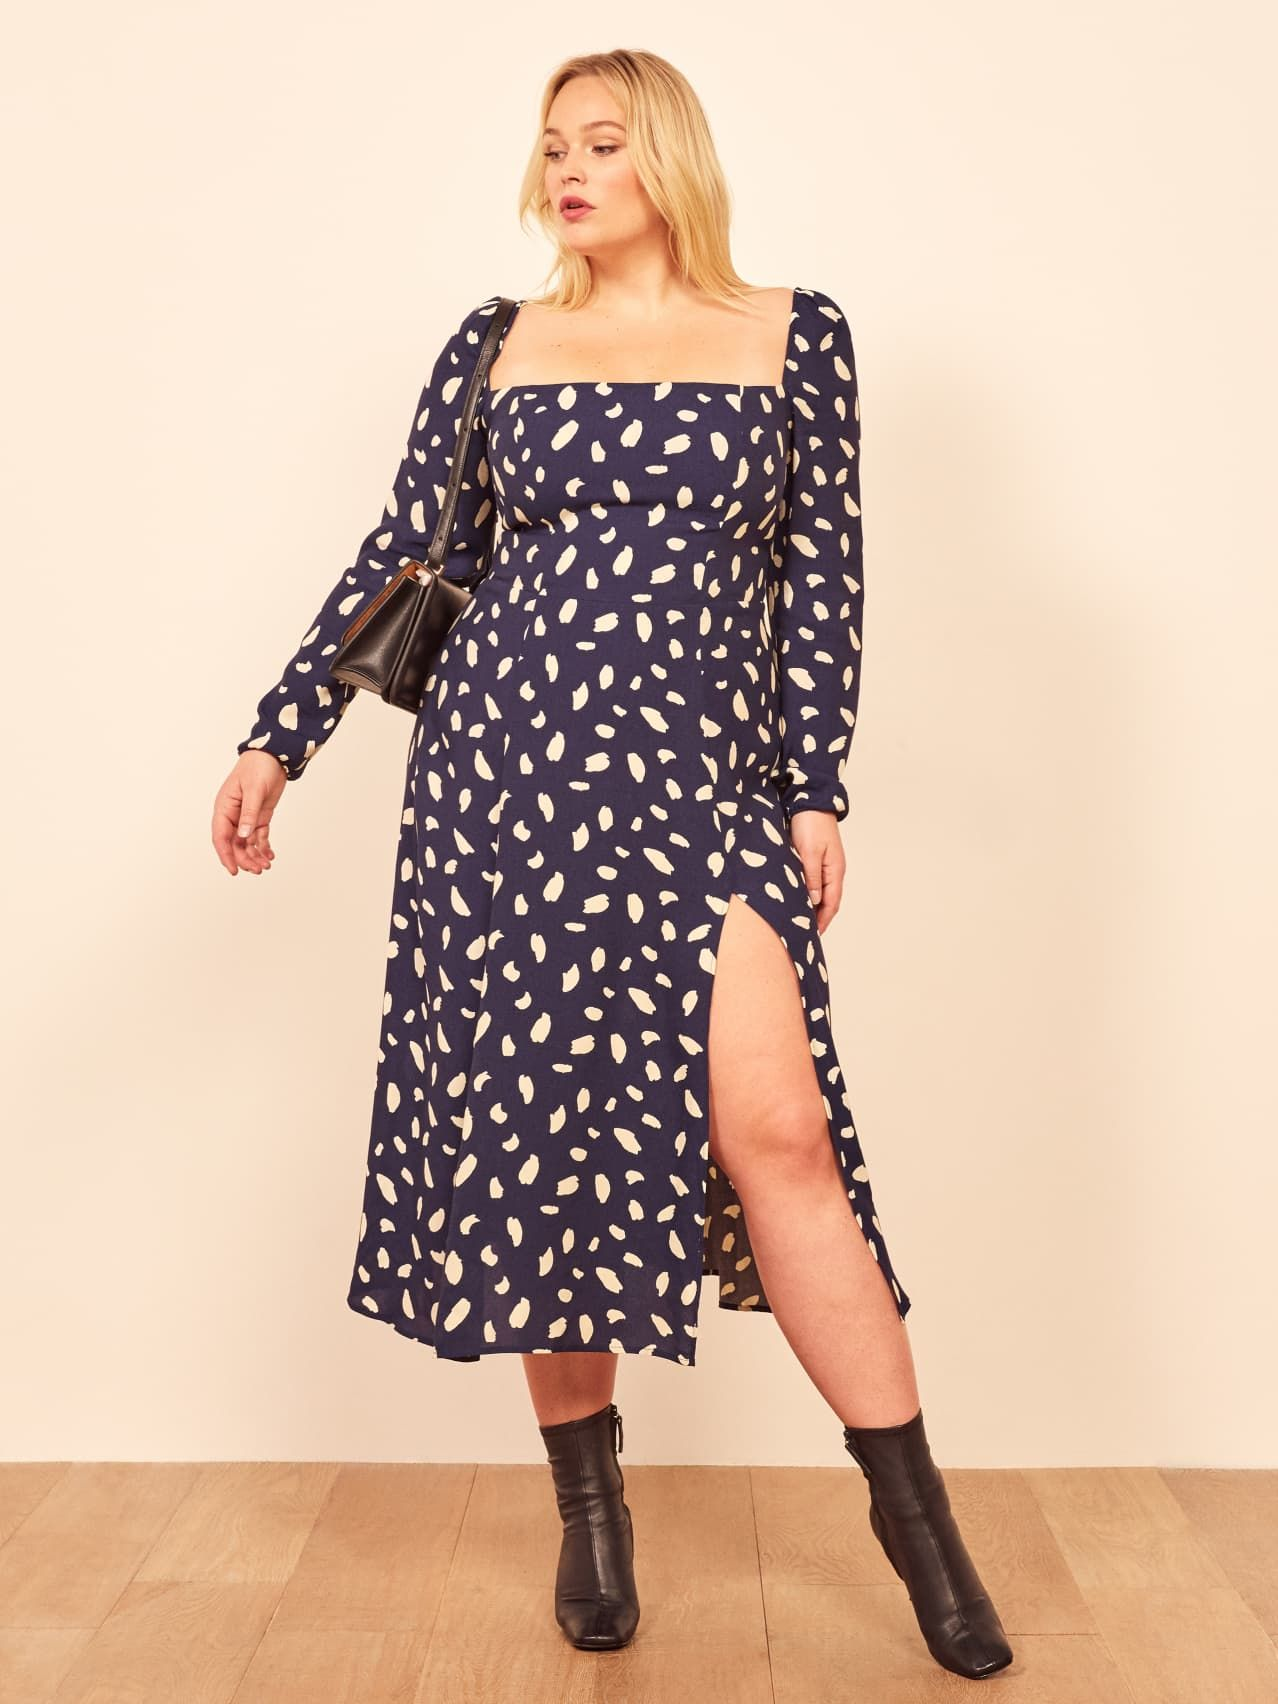 Fyi Reformation S Sale Is Now Up To 70 Off Plus Size Summer Dresses Wedding Guest Style Dresses [ 1704 x 1278 Pixel ]